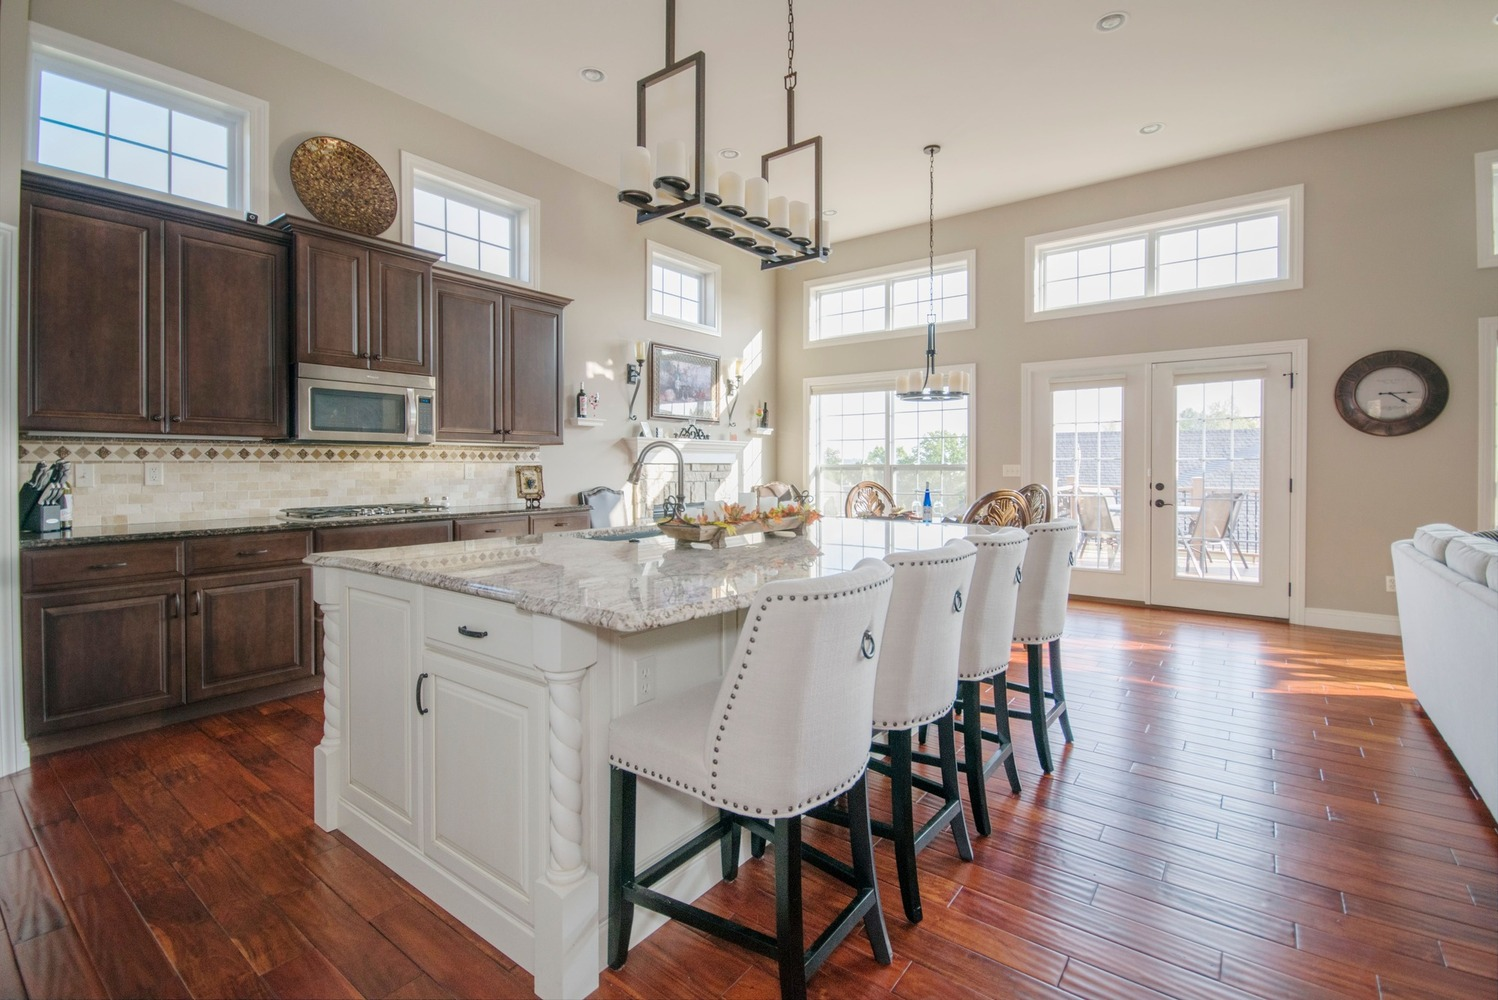 Kitchen Open Door Design Six Ways To Open Up Your Kitchen Procraft Windows